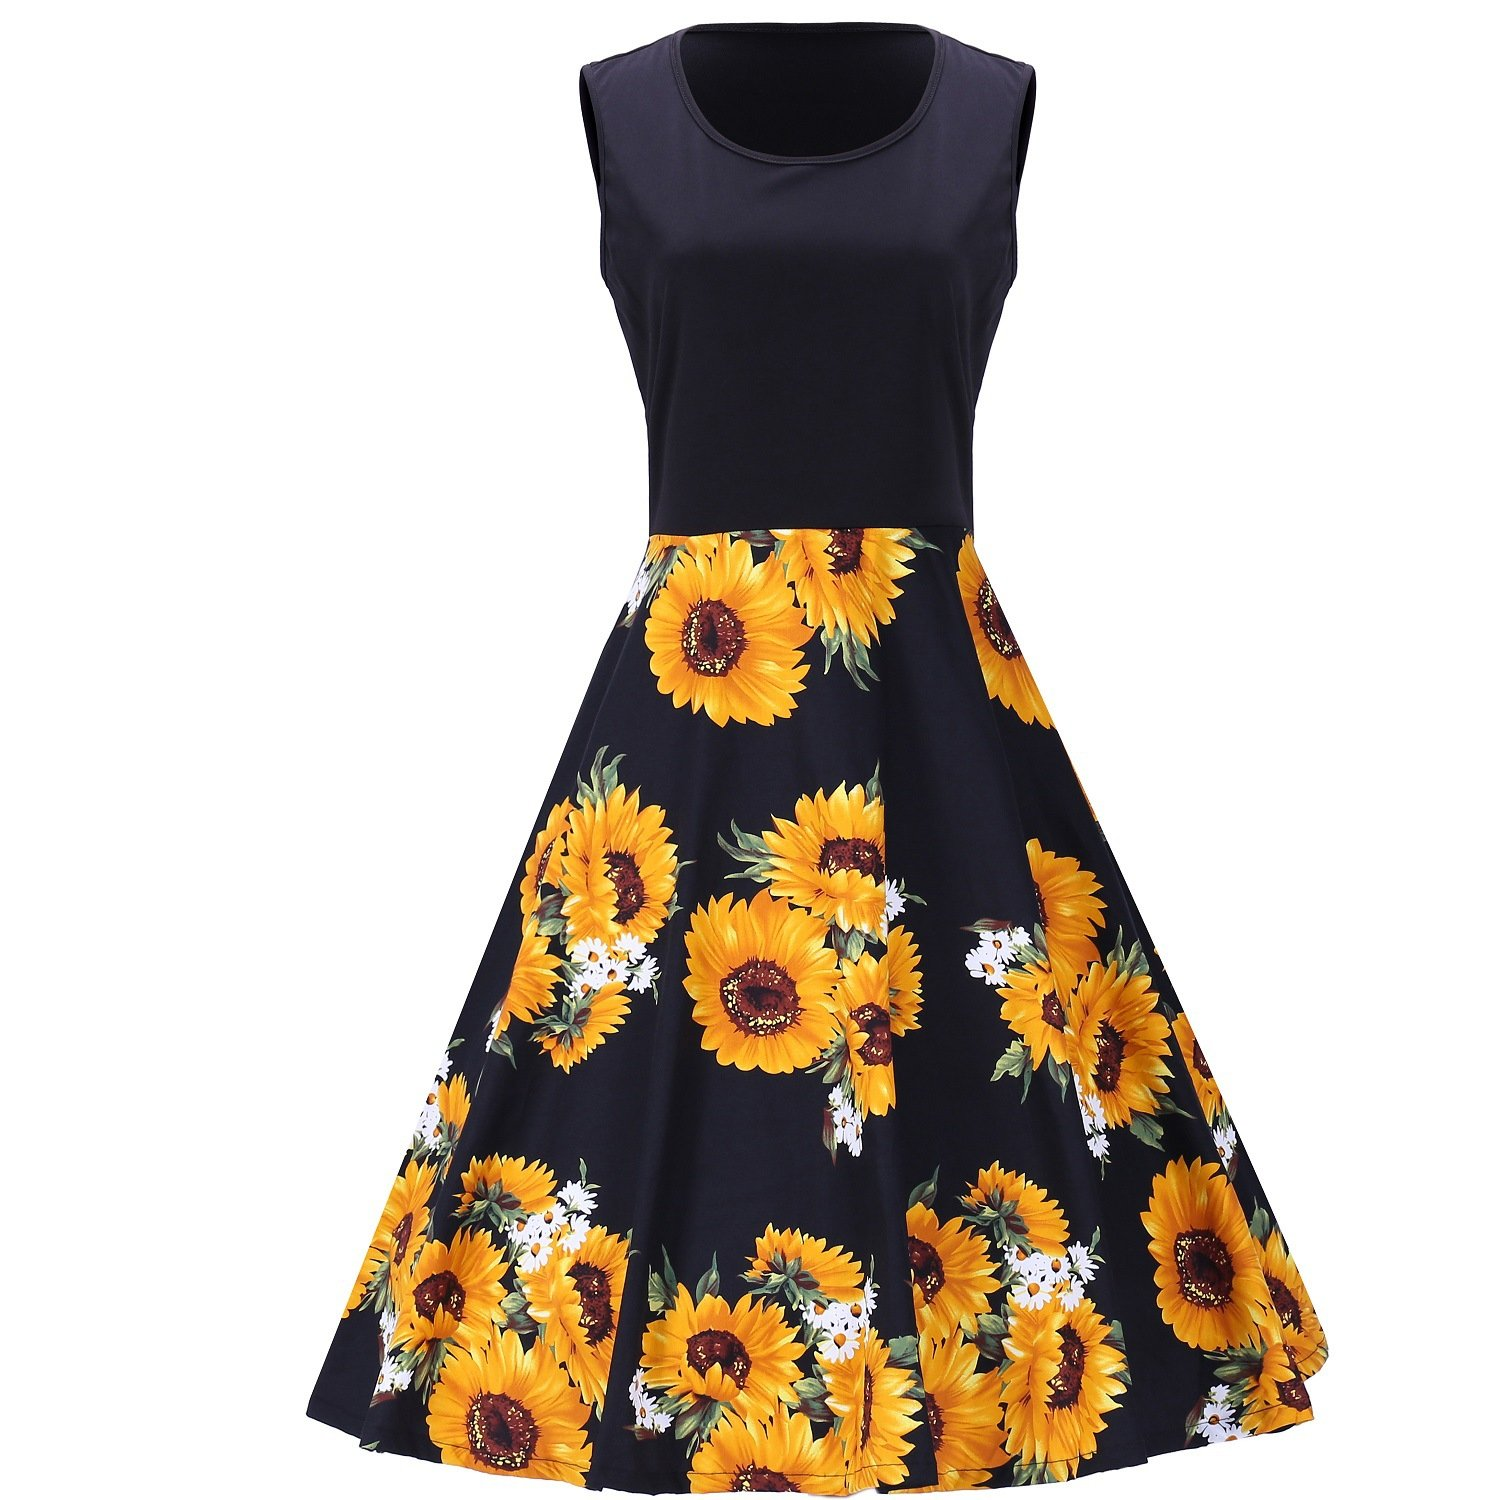 3655088ce691 BaronHong Women's Round Neck Sleeveless Sunflower Printing Summer Casual  Sundress Flare Dress at Amazon Women's Clothing store: